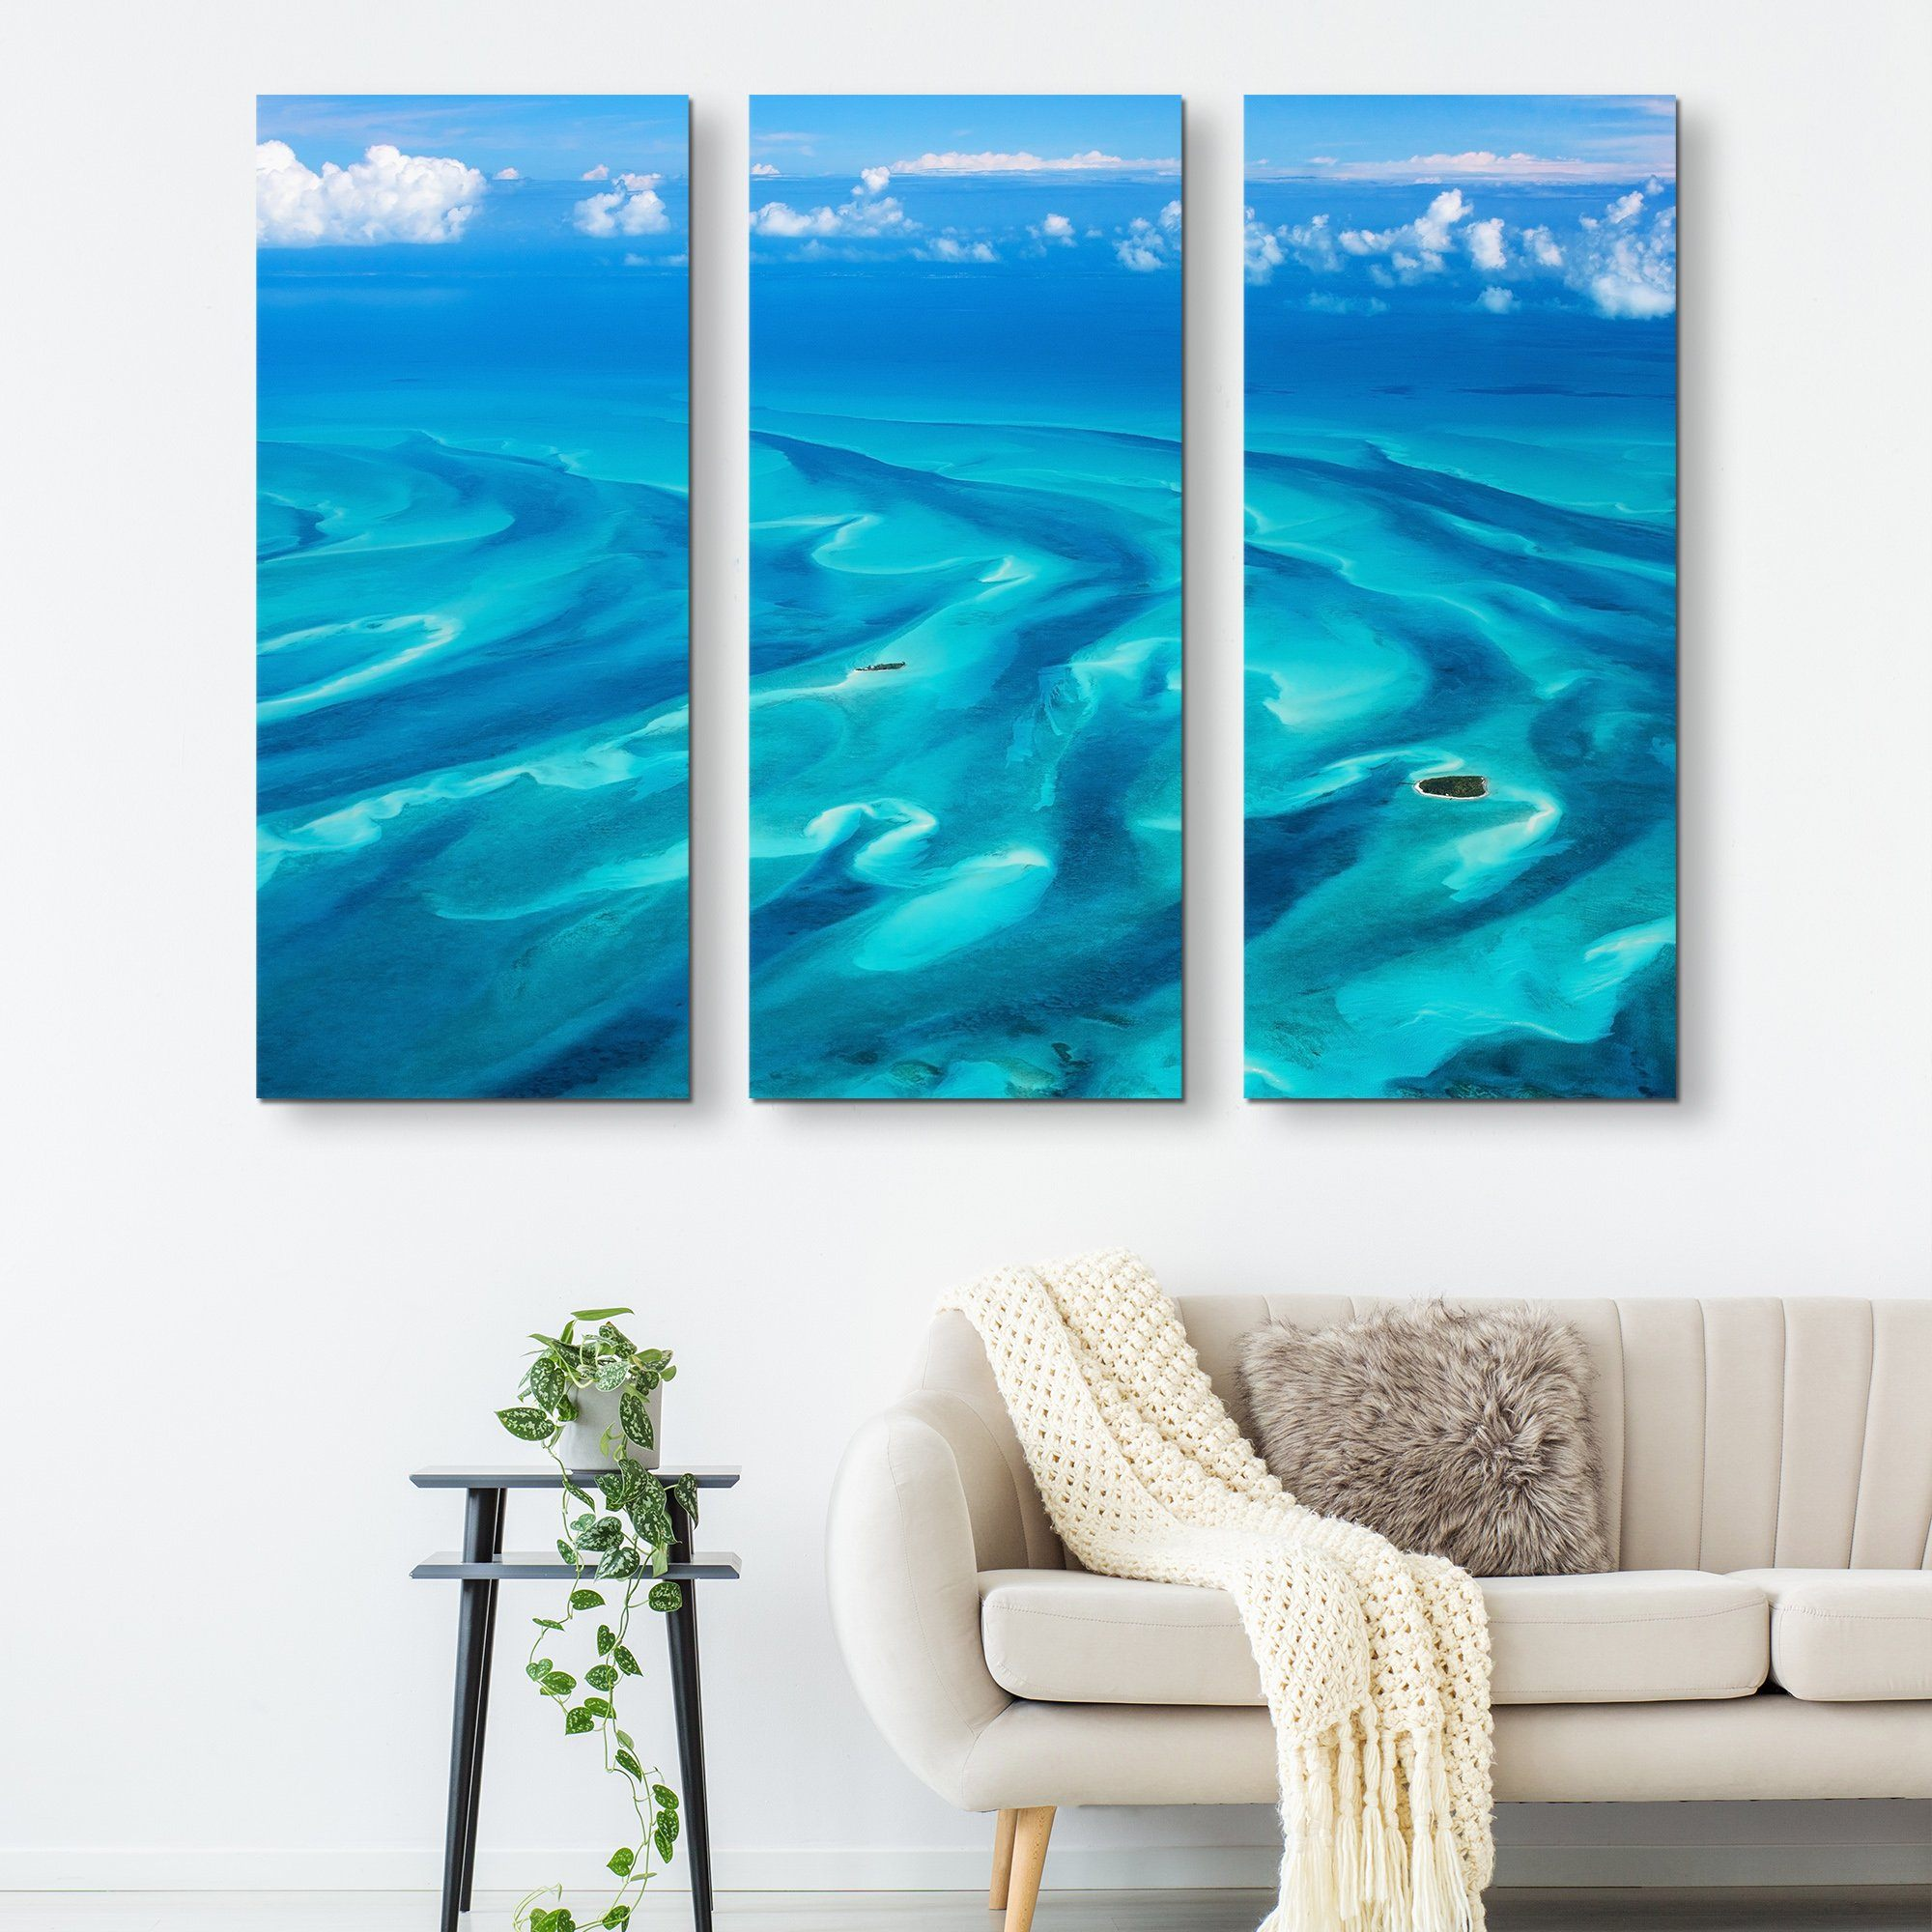 3 piec eBeautiful Bahamas wall art